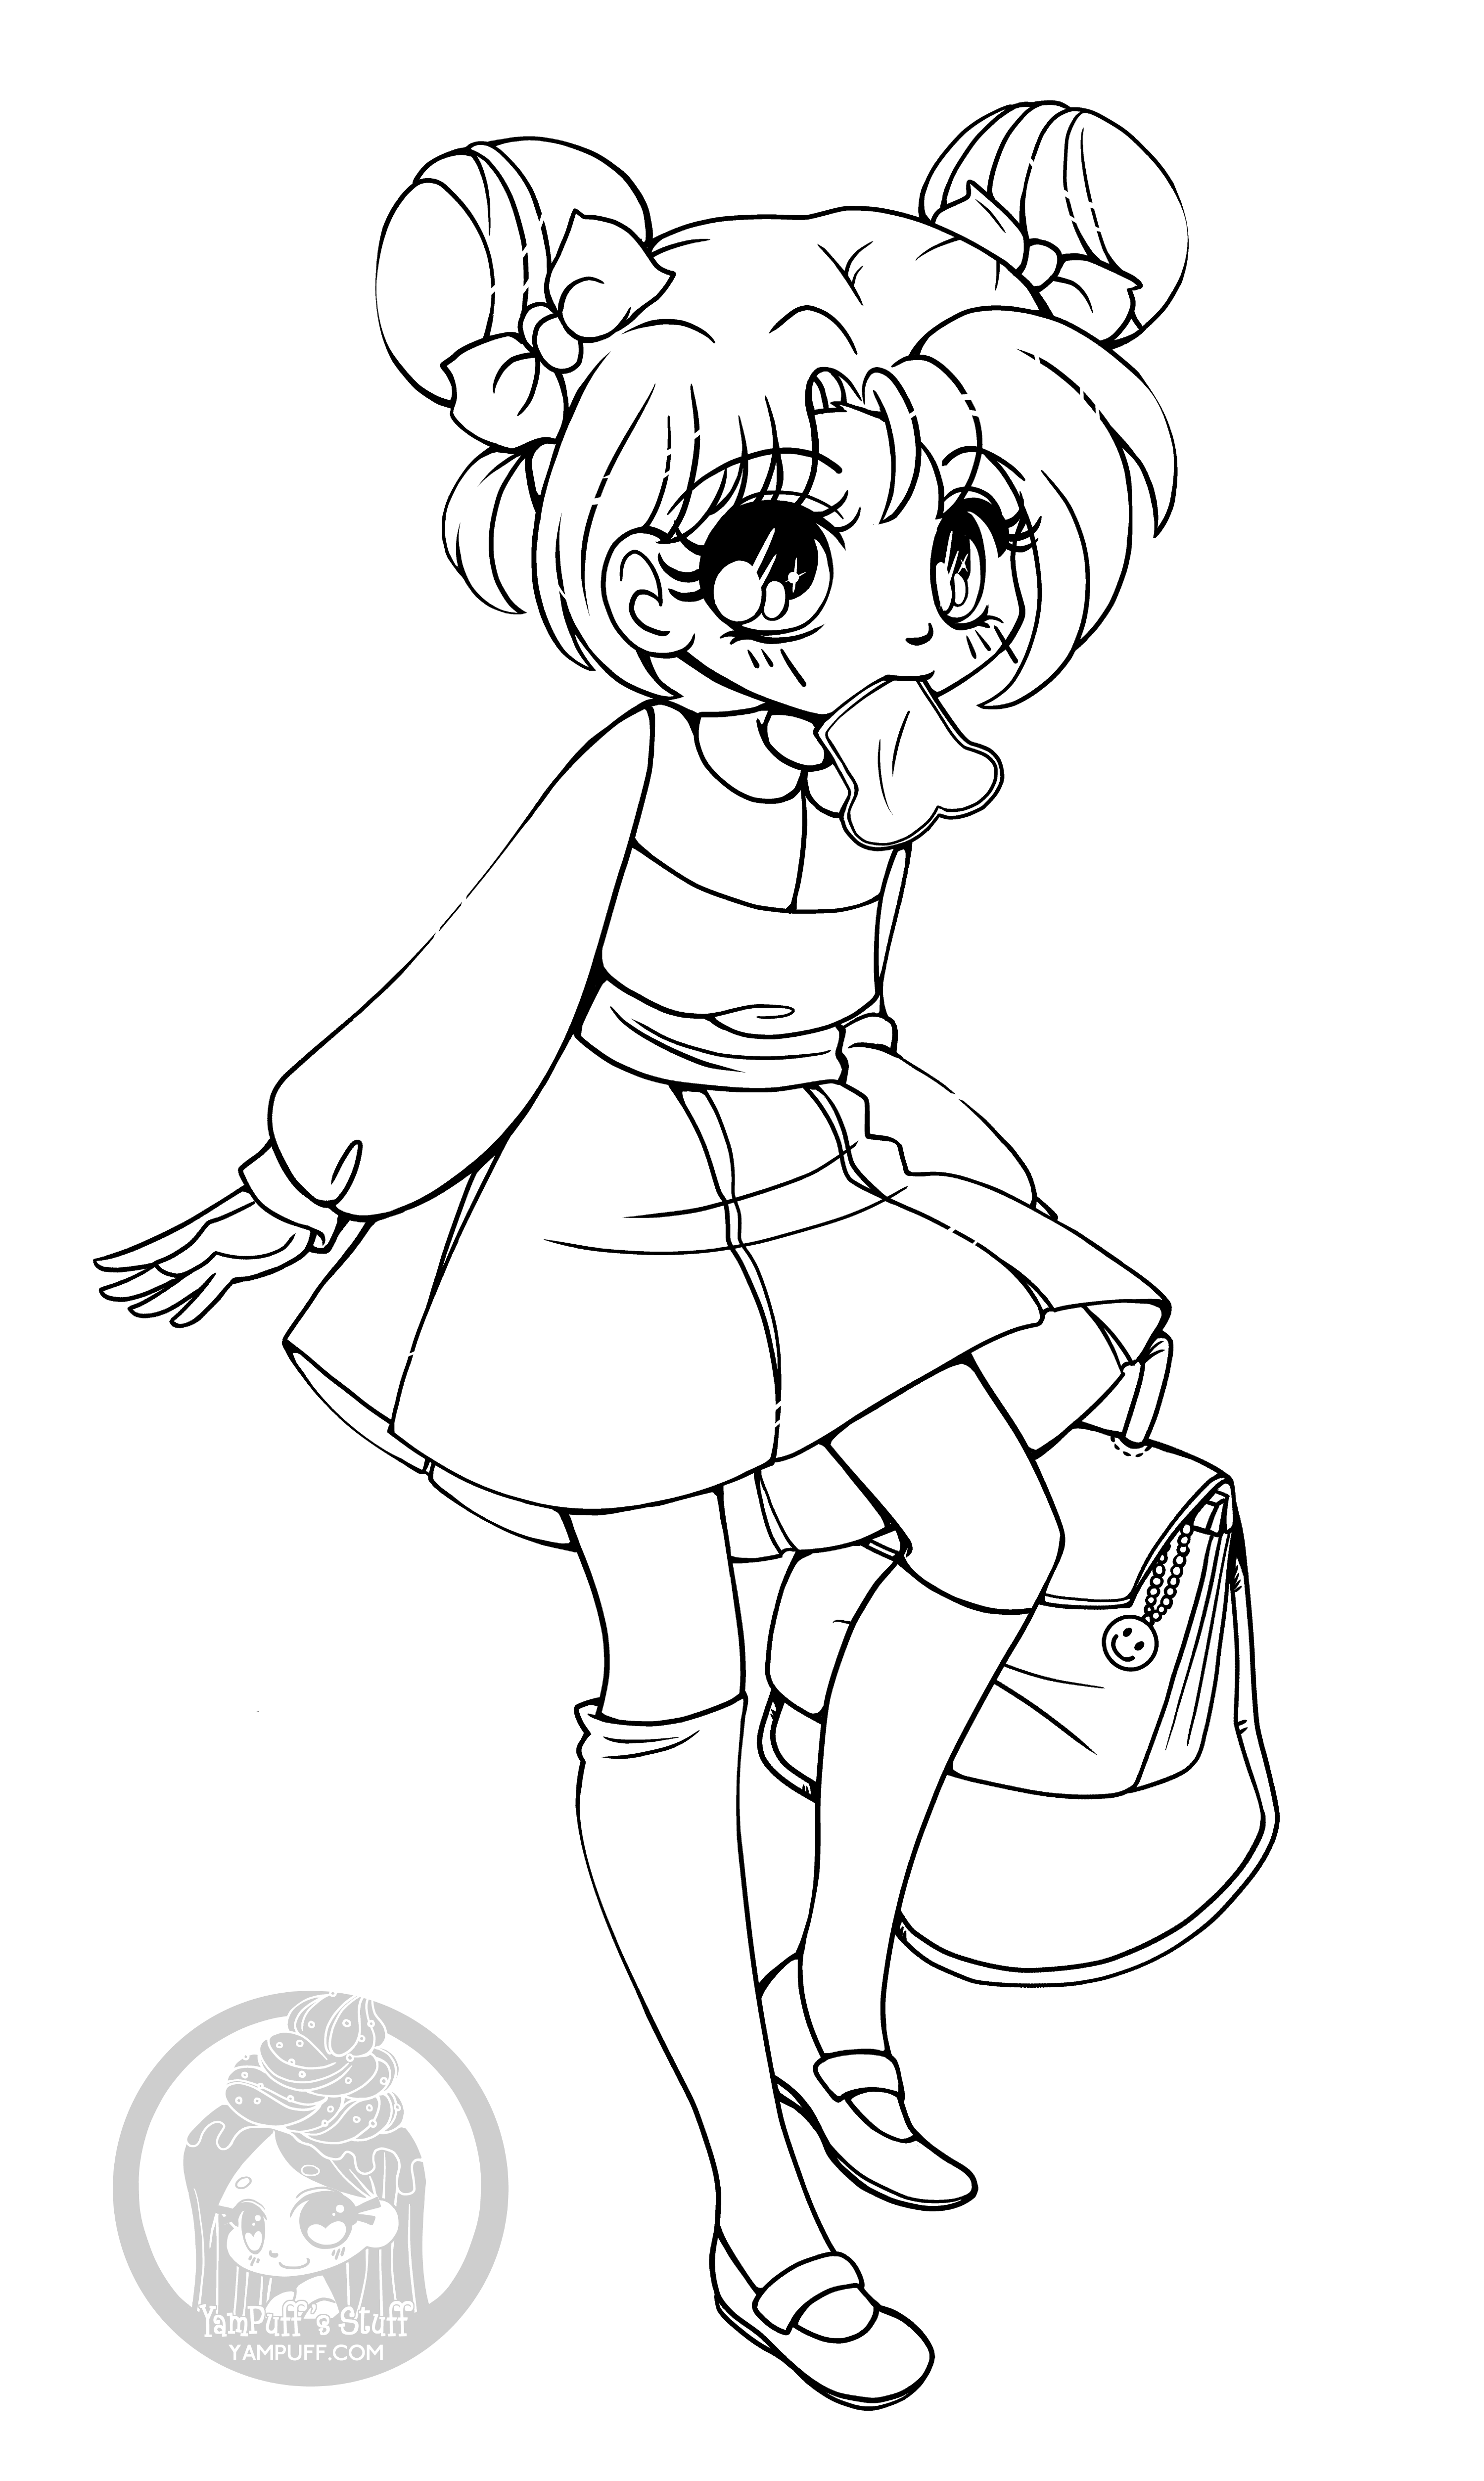 chibi girl coloring pages 25 ideas for chibi coloring pages girl home inspiration coloring chibi pages girl